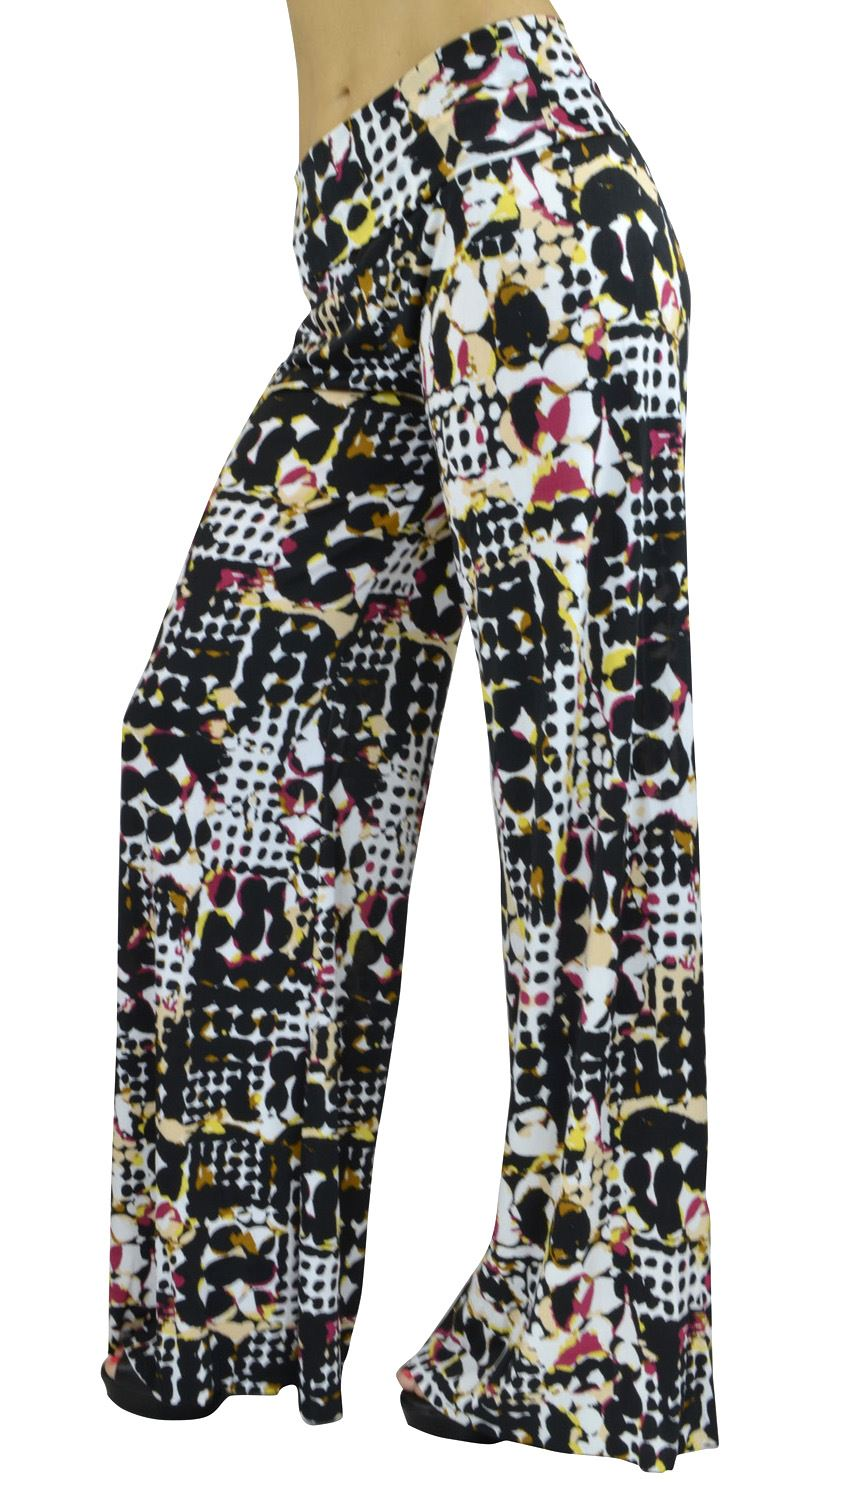 Belle Donne- Women's High Waist Palazzo Pants - Abstract Geometric Print/M